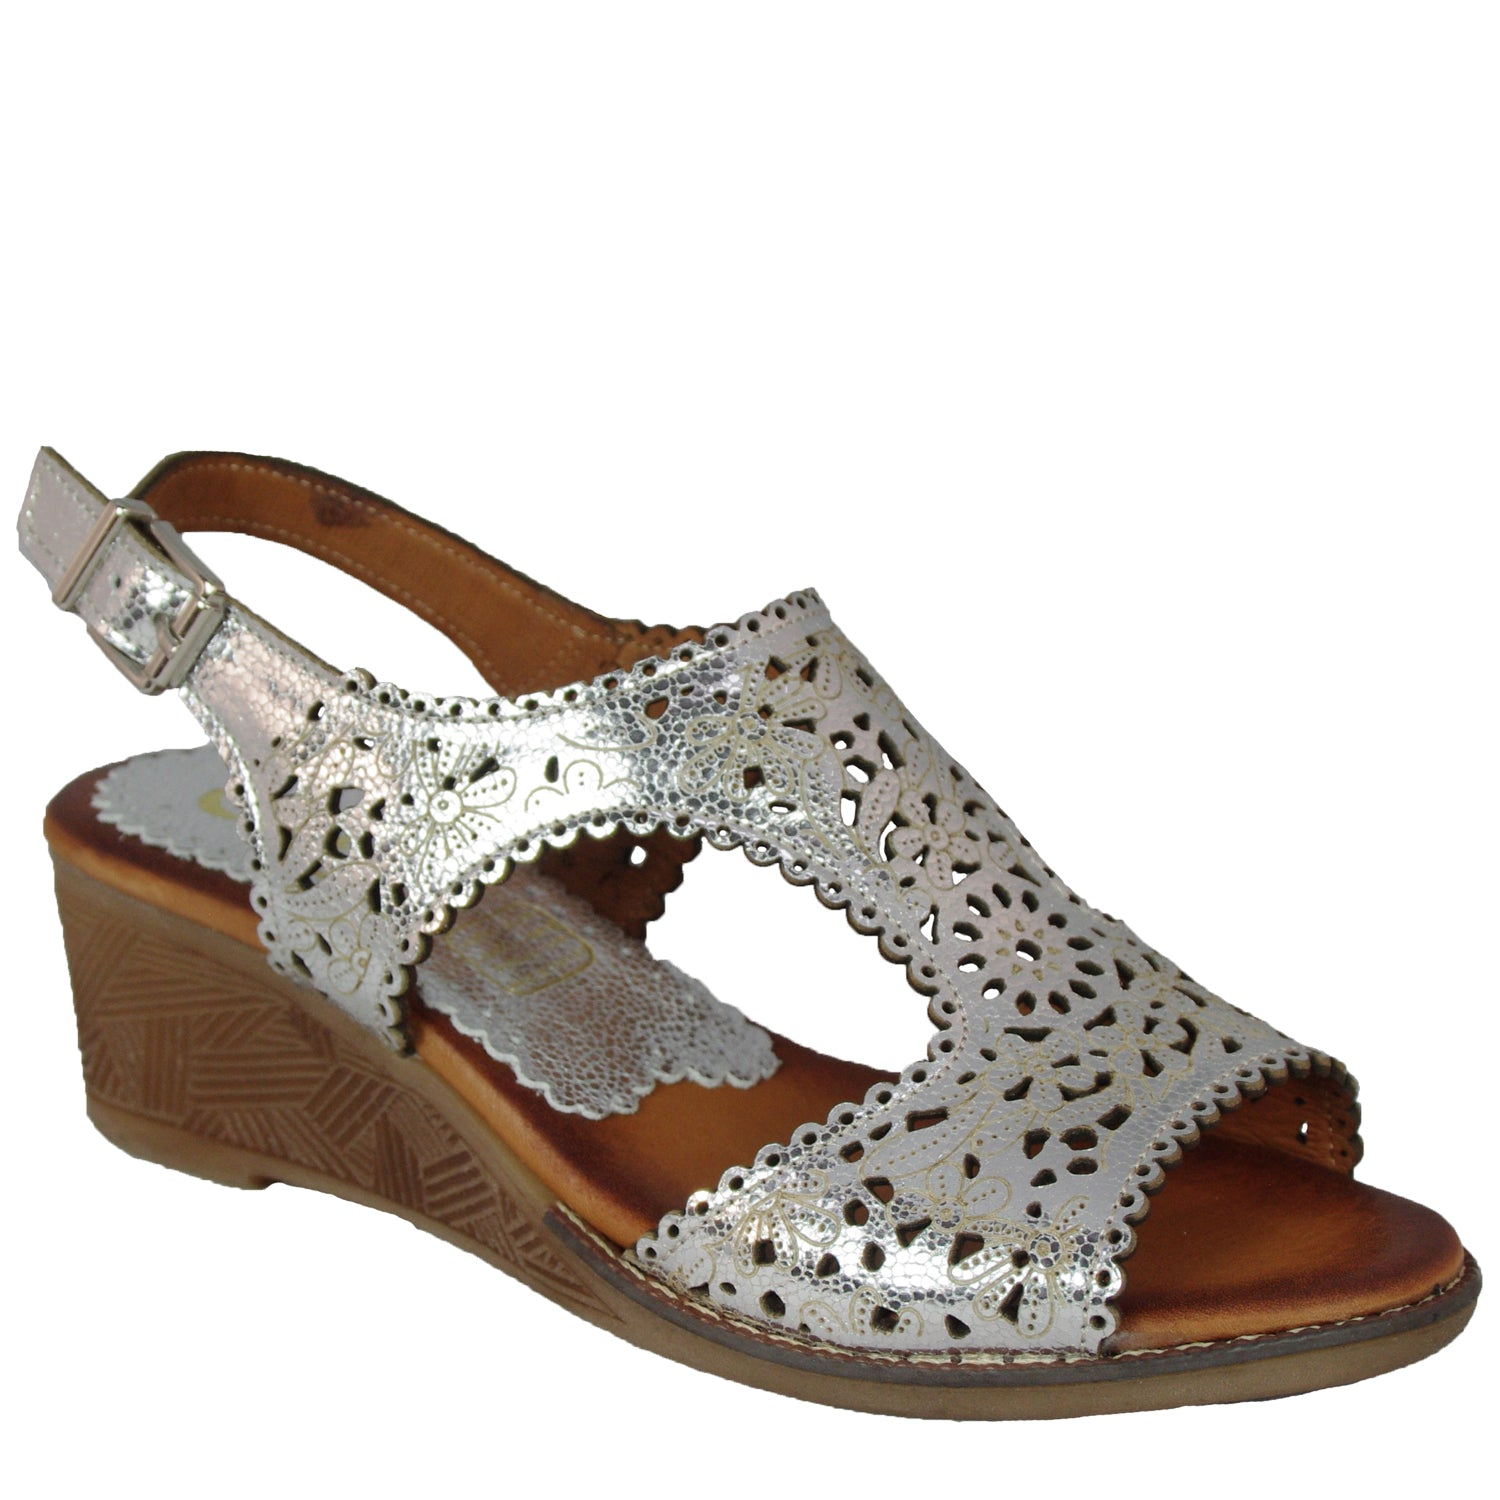 ec3b0b5a51bf0 Shop Products Online - Ian's Shoes for Women